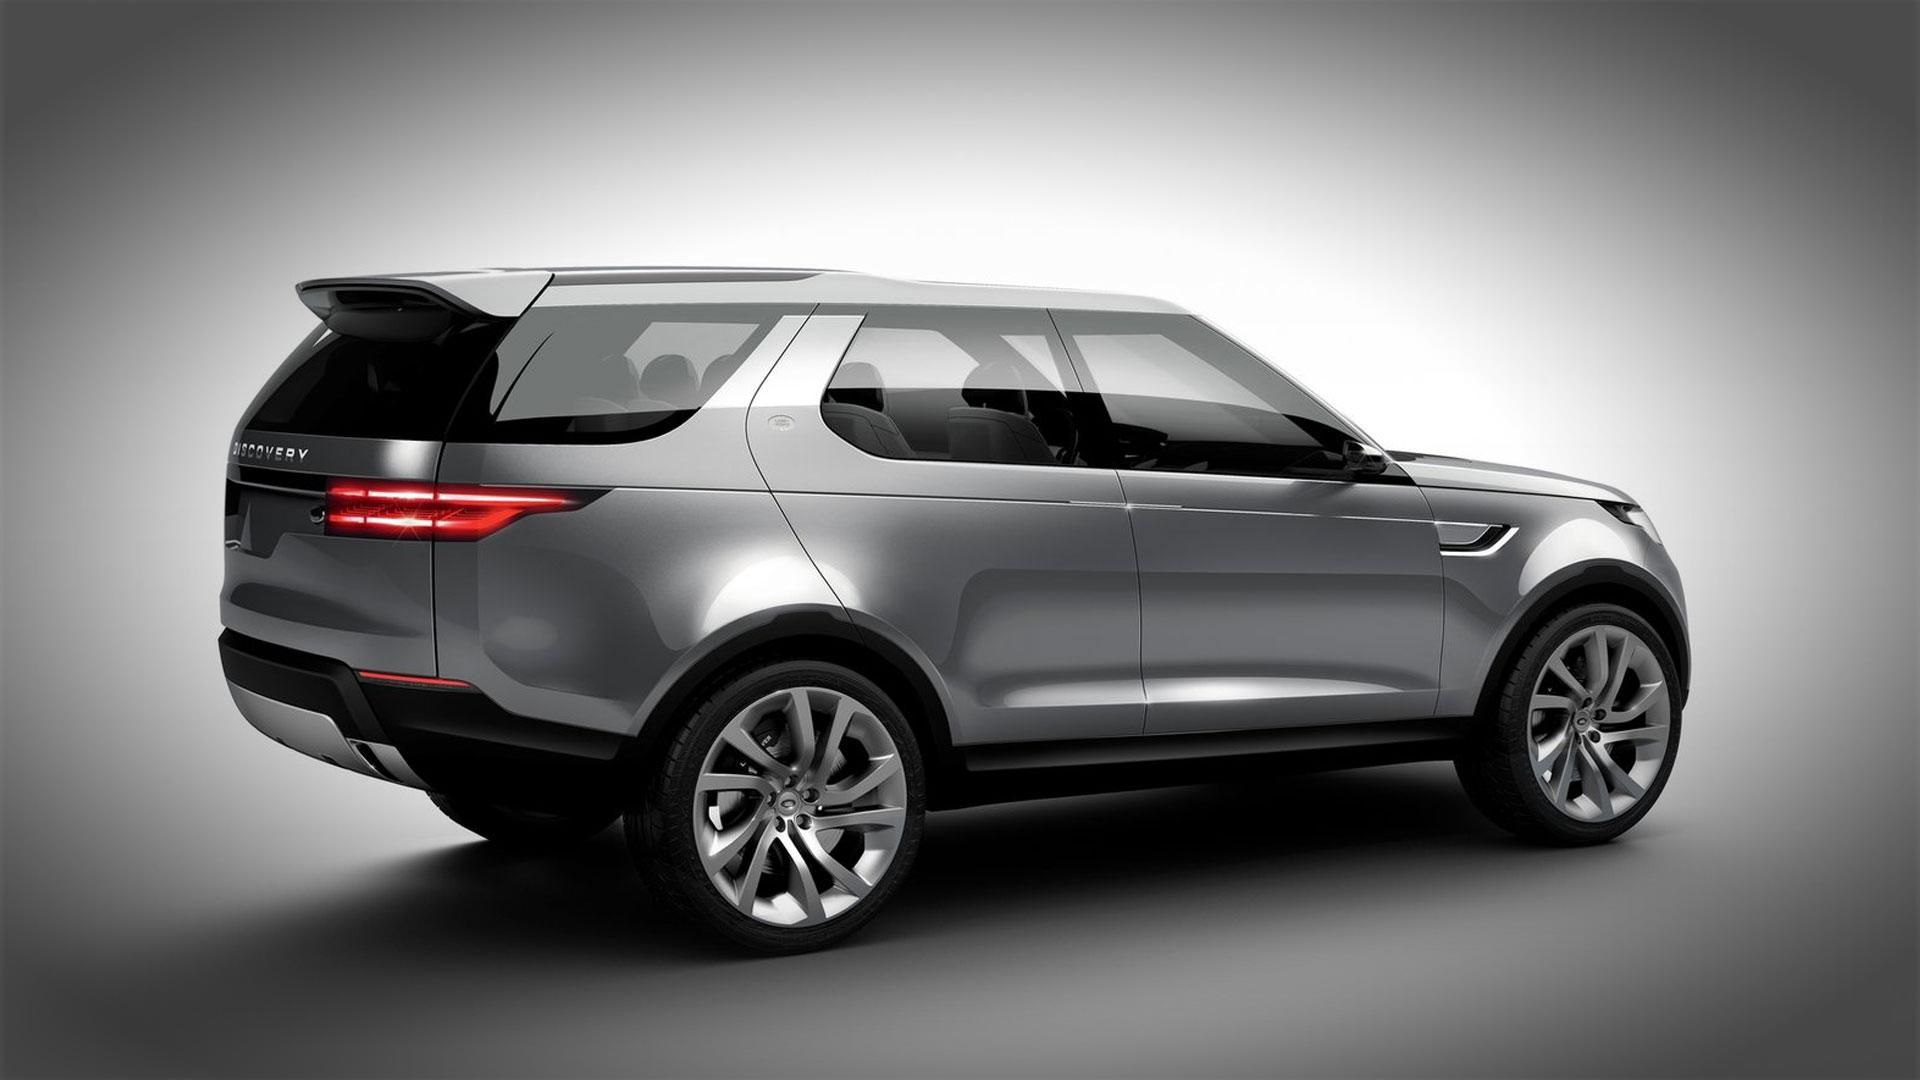 2014 Land Rover Discovery Vision Concept Wallpapers 2014 Land